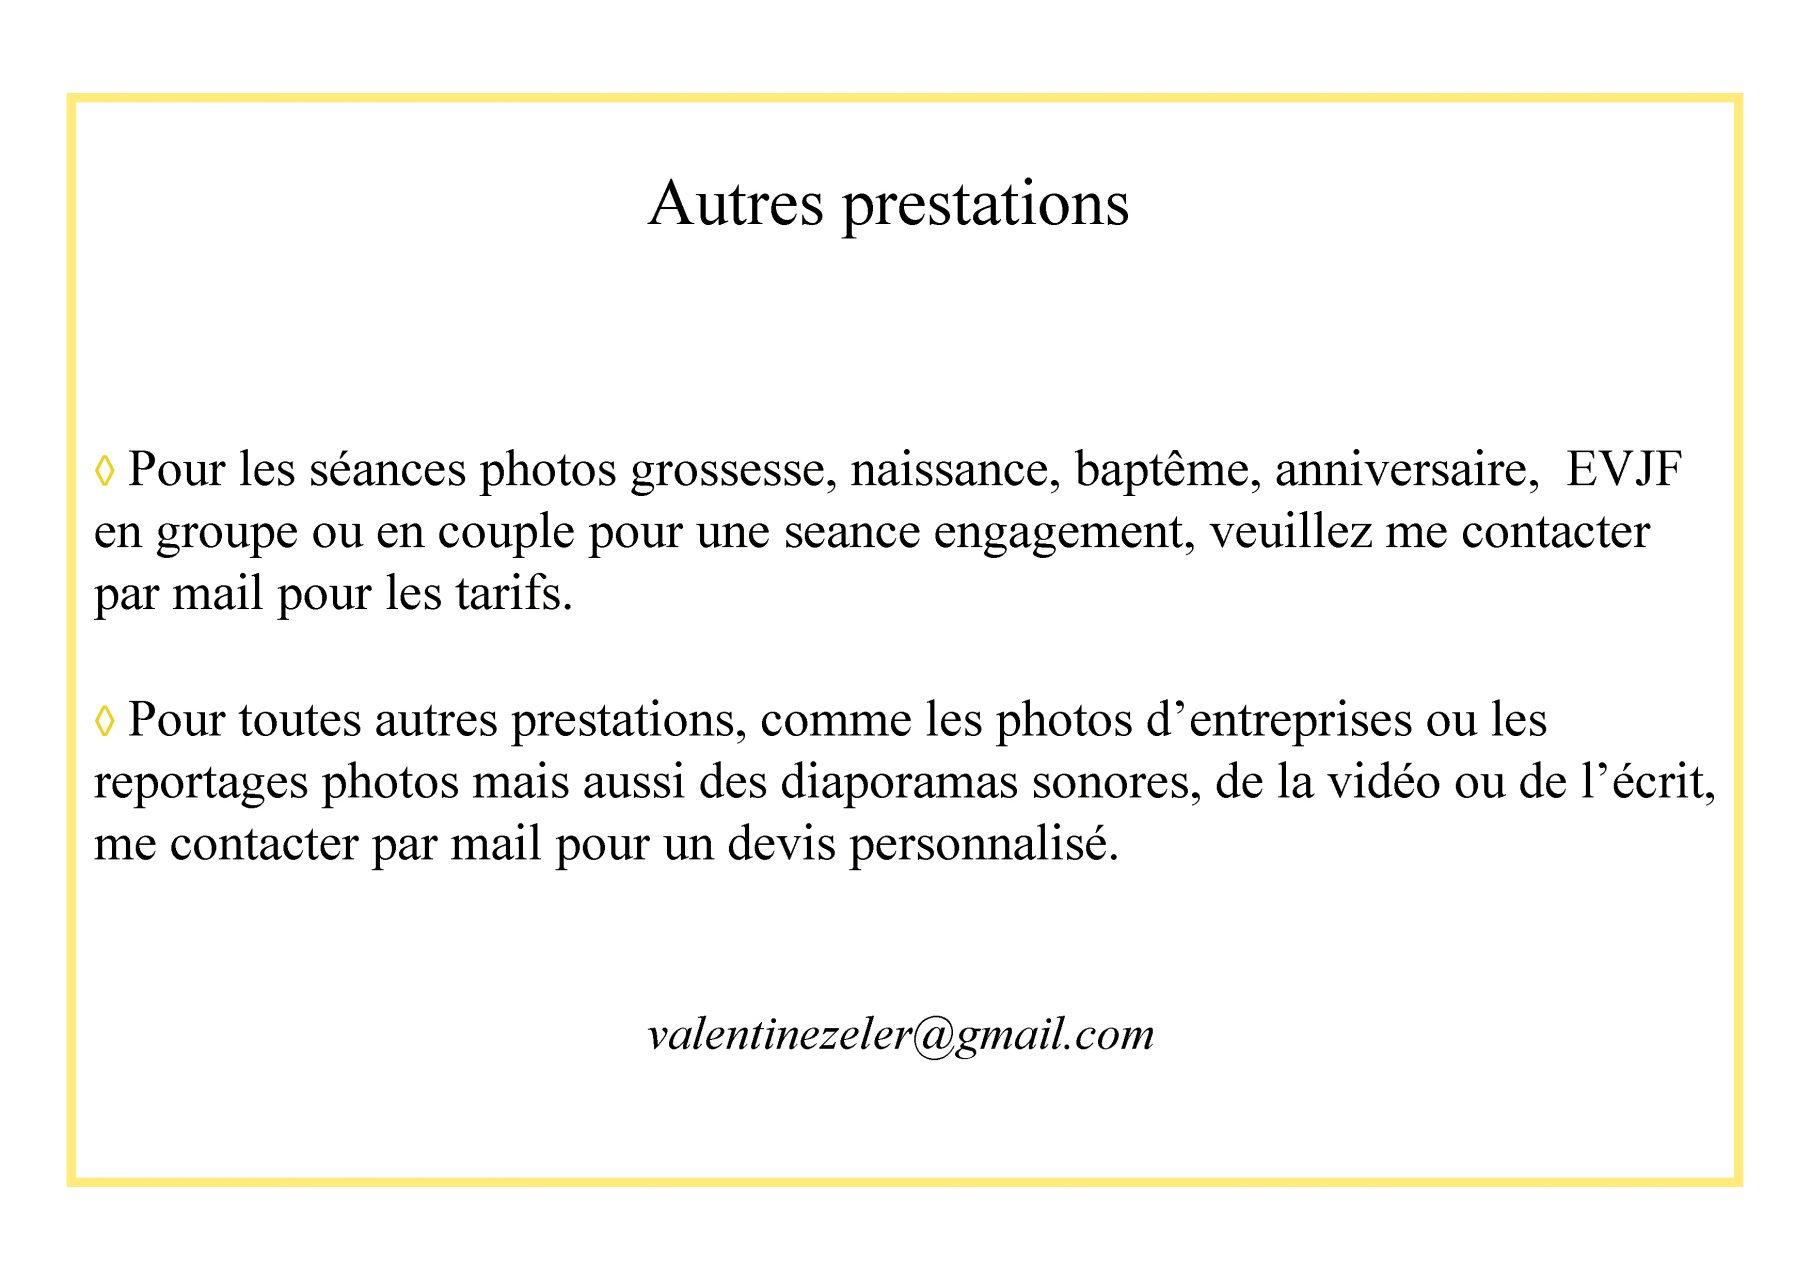 Autres prestations photos